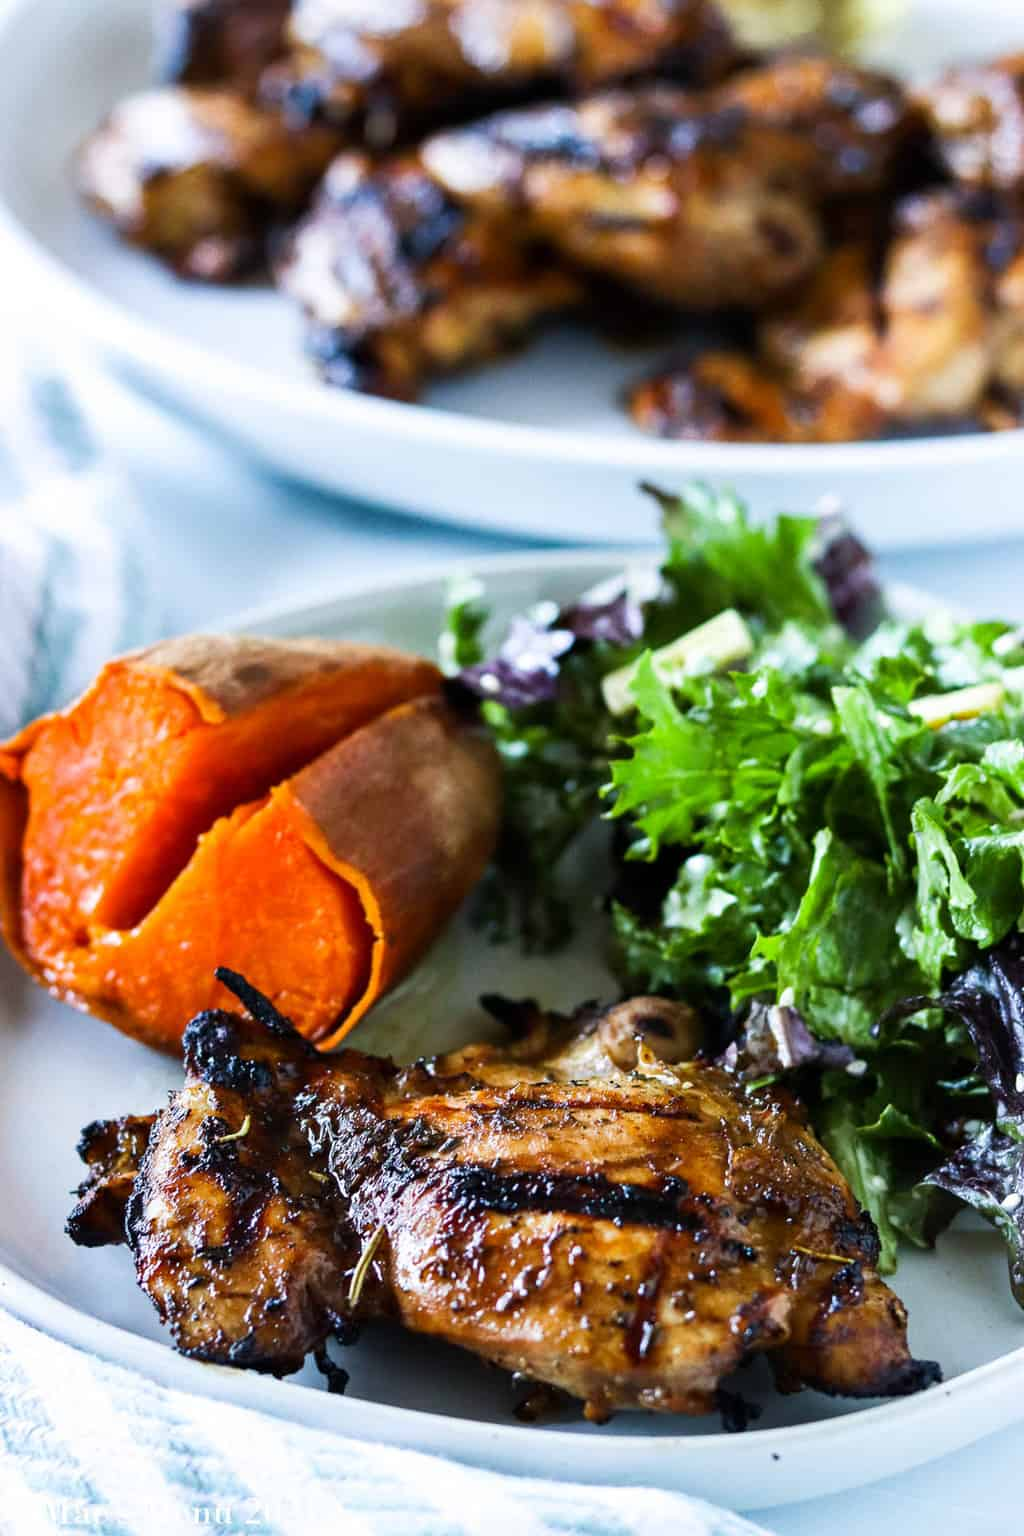 A plate of grilled chicken thighs, sweet potato, and salad